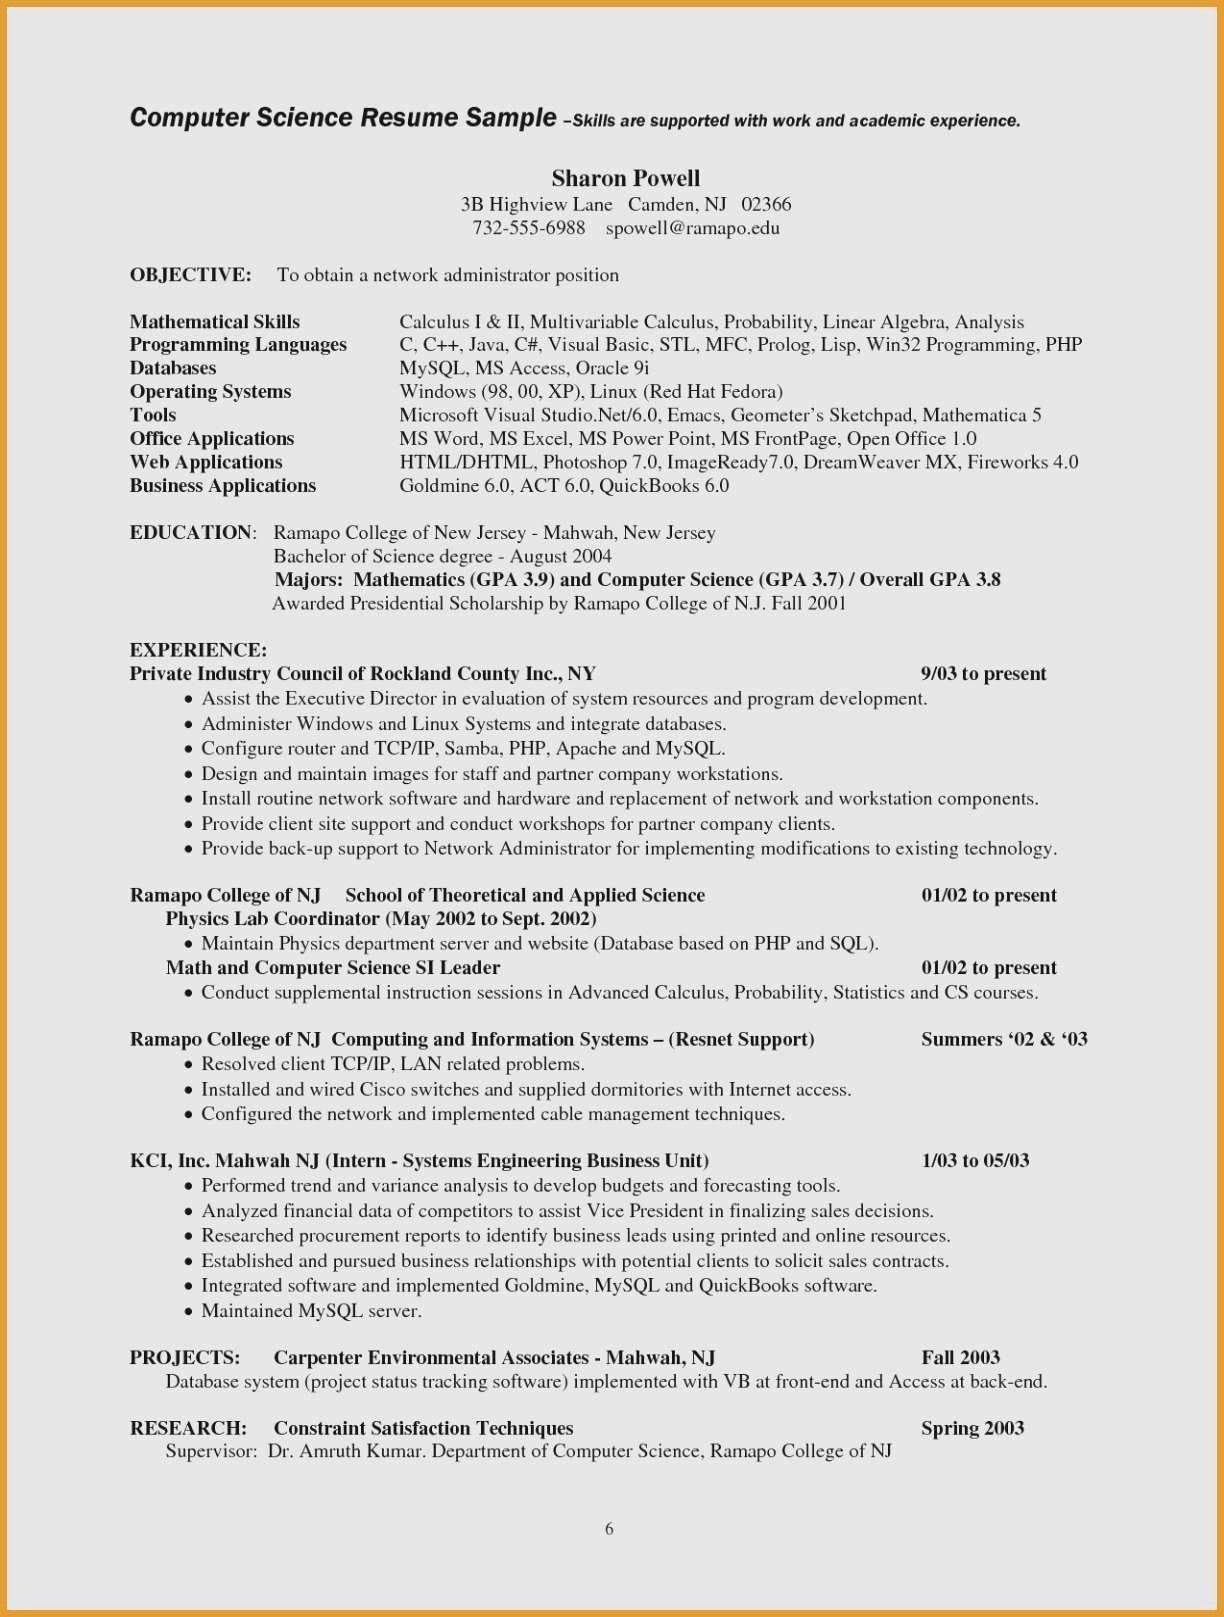 Computer Science Resume Example Data Scientist Resume Resume Objective Examples Resume Examples Student Resume Template